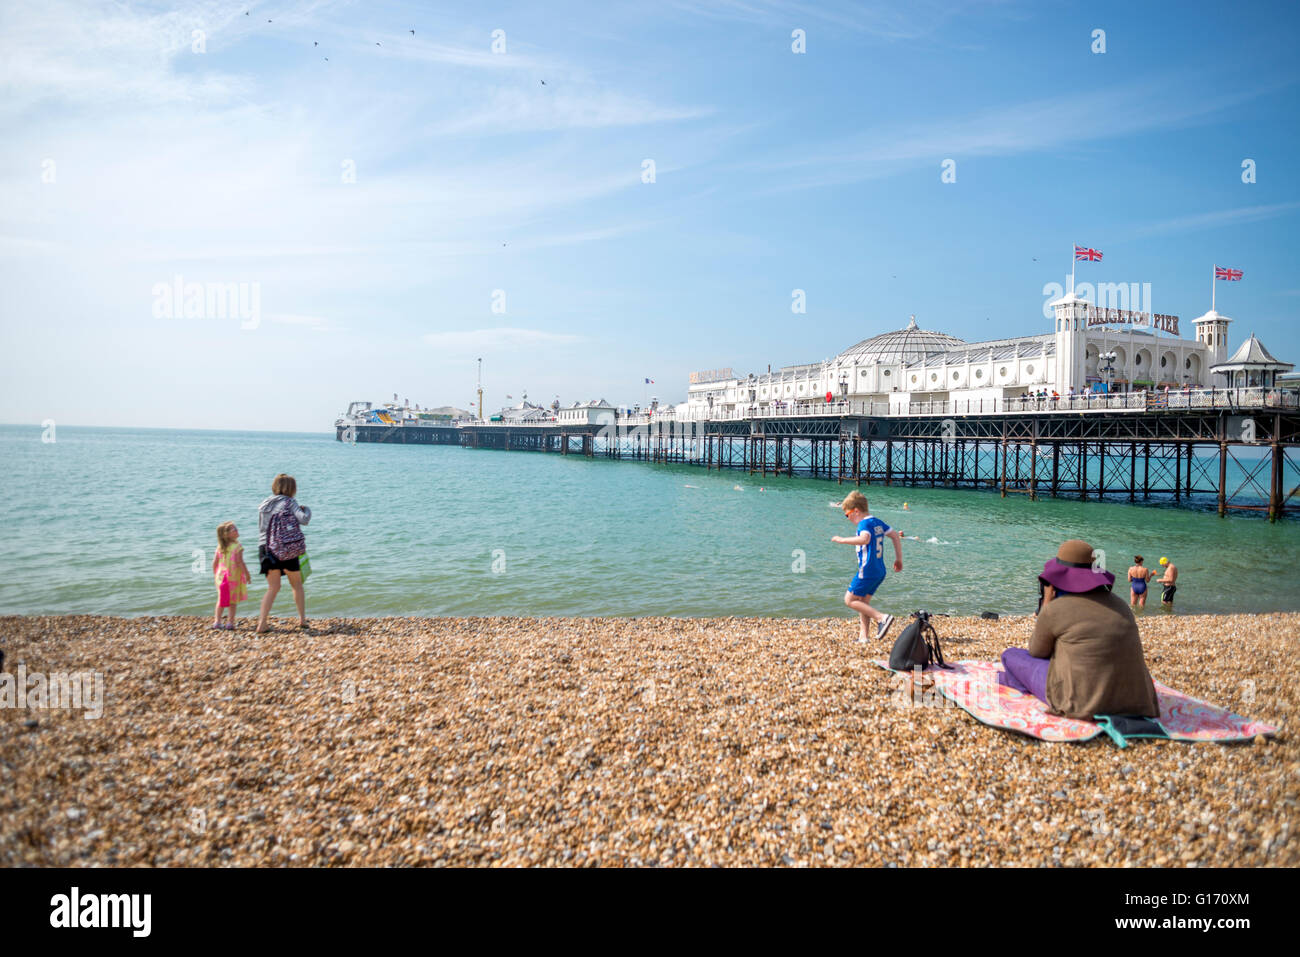 View of Brighton Pier on a Sunny Spring Day from the beach - Stock Image